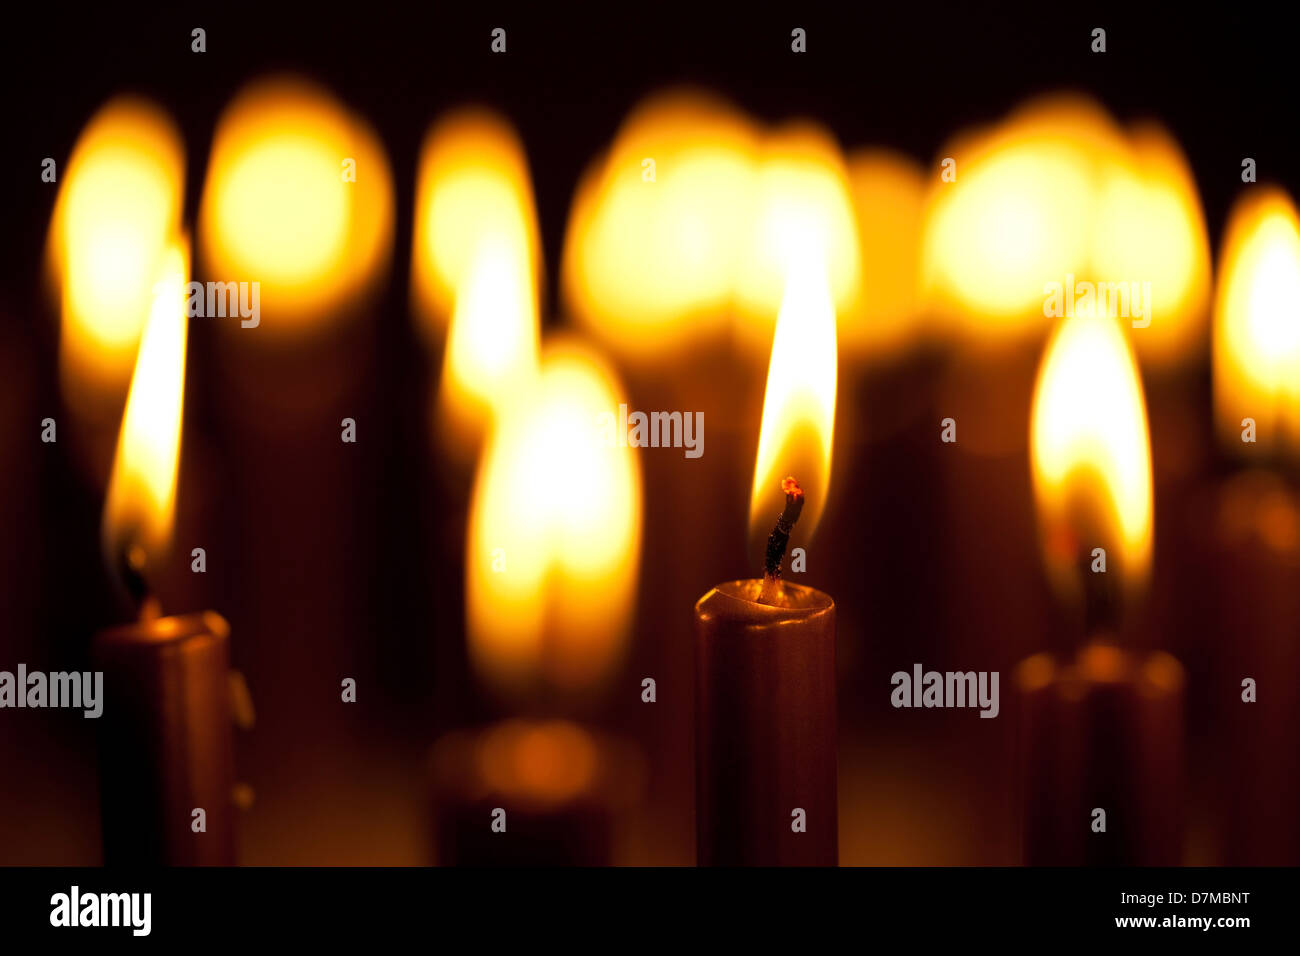 Lit candles - Stock Image